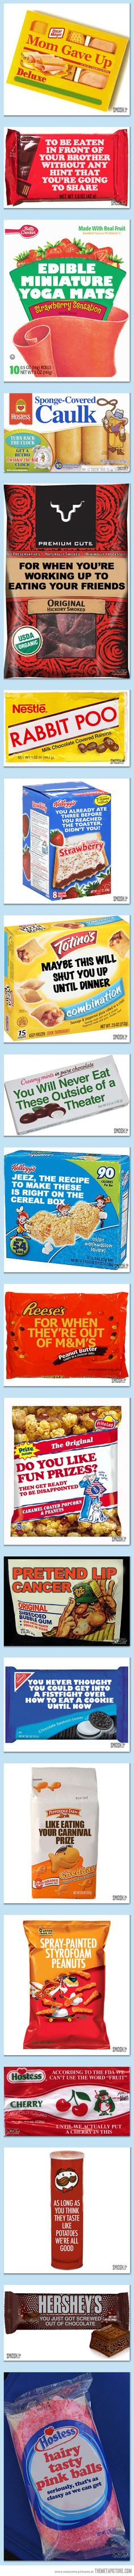 "20 Original Names for Famous Snack Foods    These are HILARIOUS! I especially like ""mom gave up"" haha"